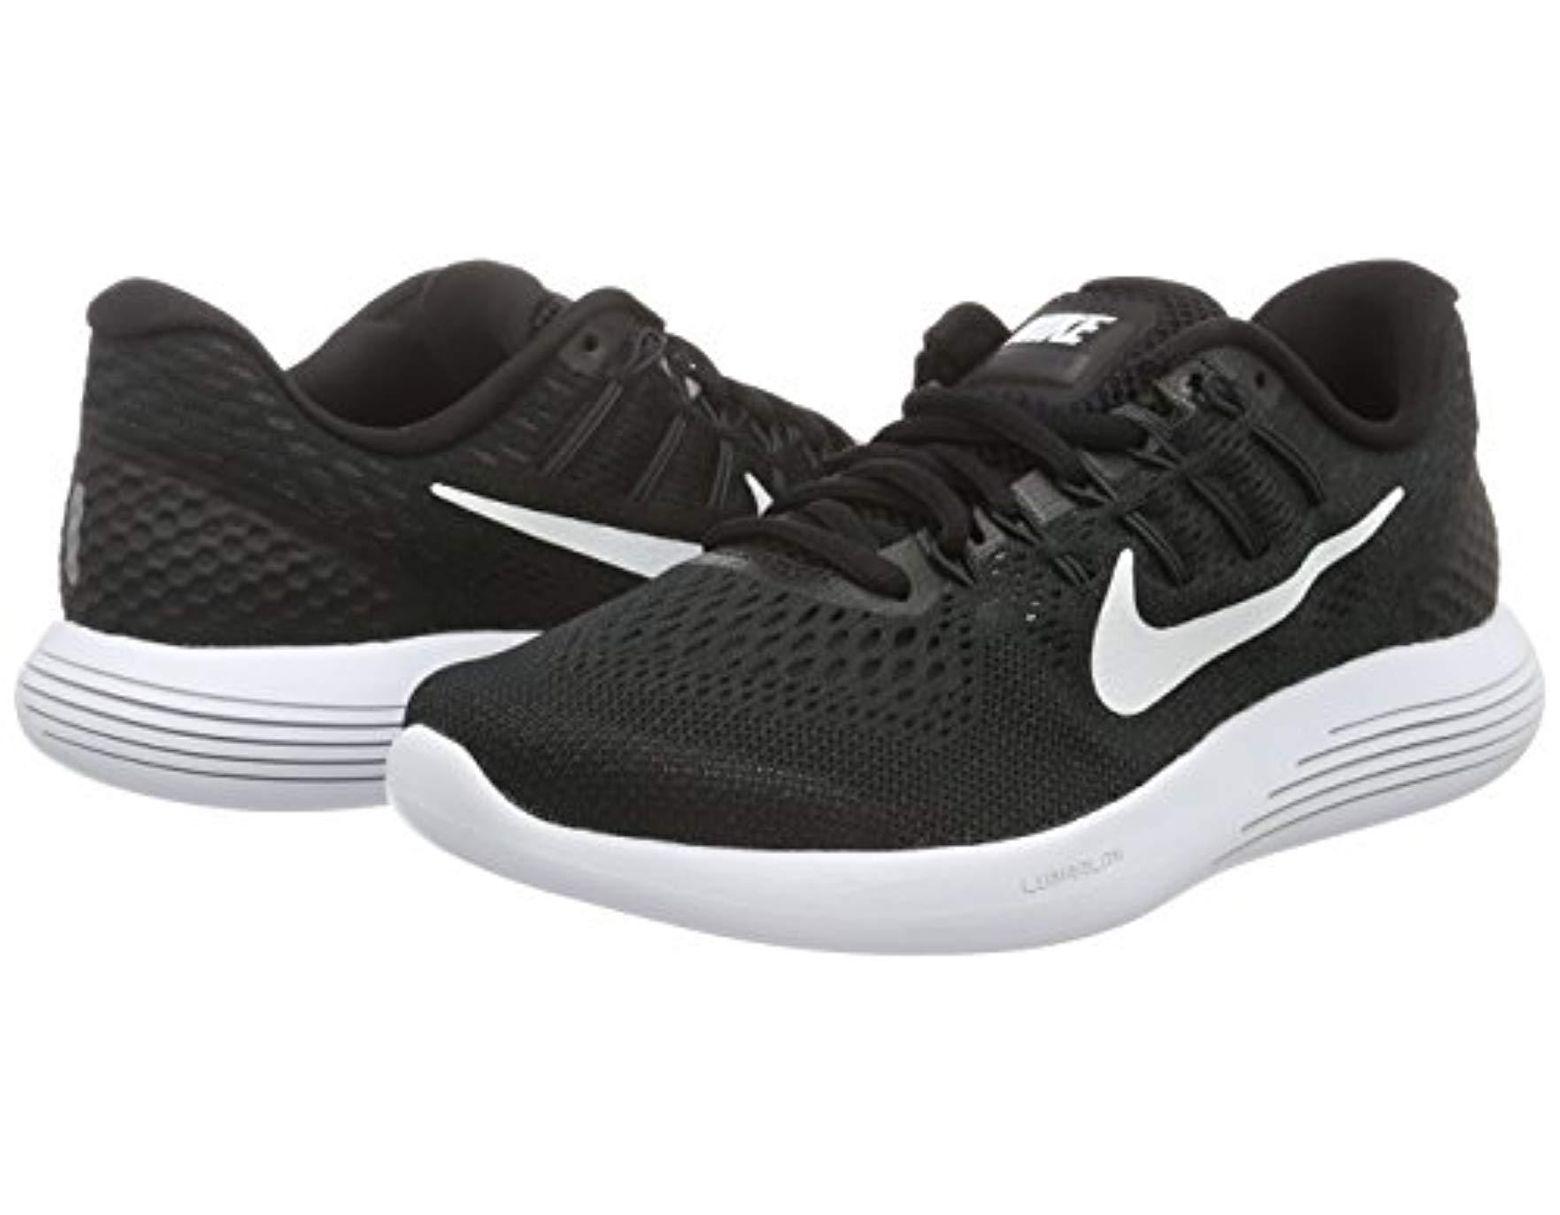 sneakers for cheap 74298 116f2 Men's Black Lunarglide 8 Running Shoes